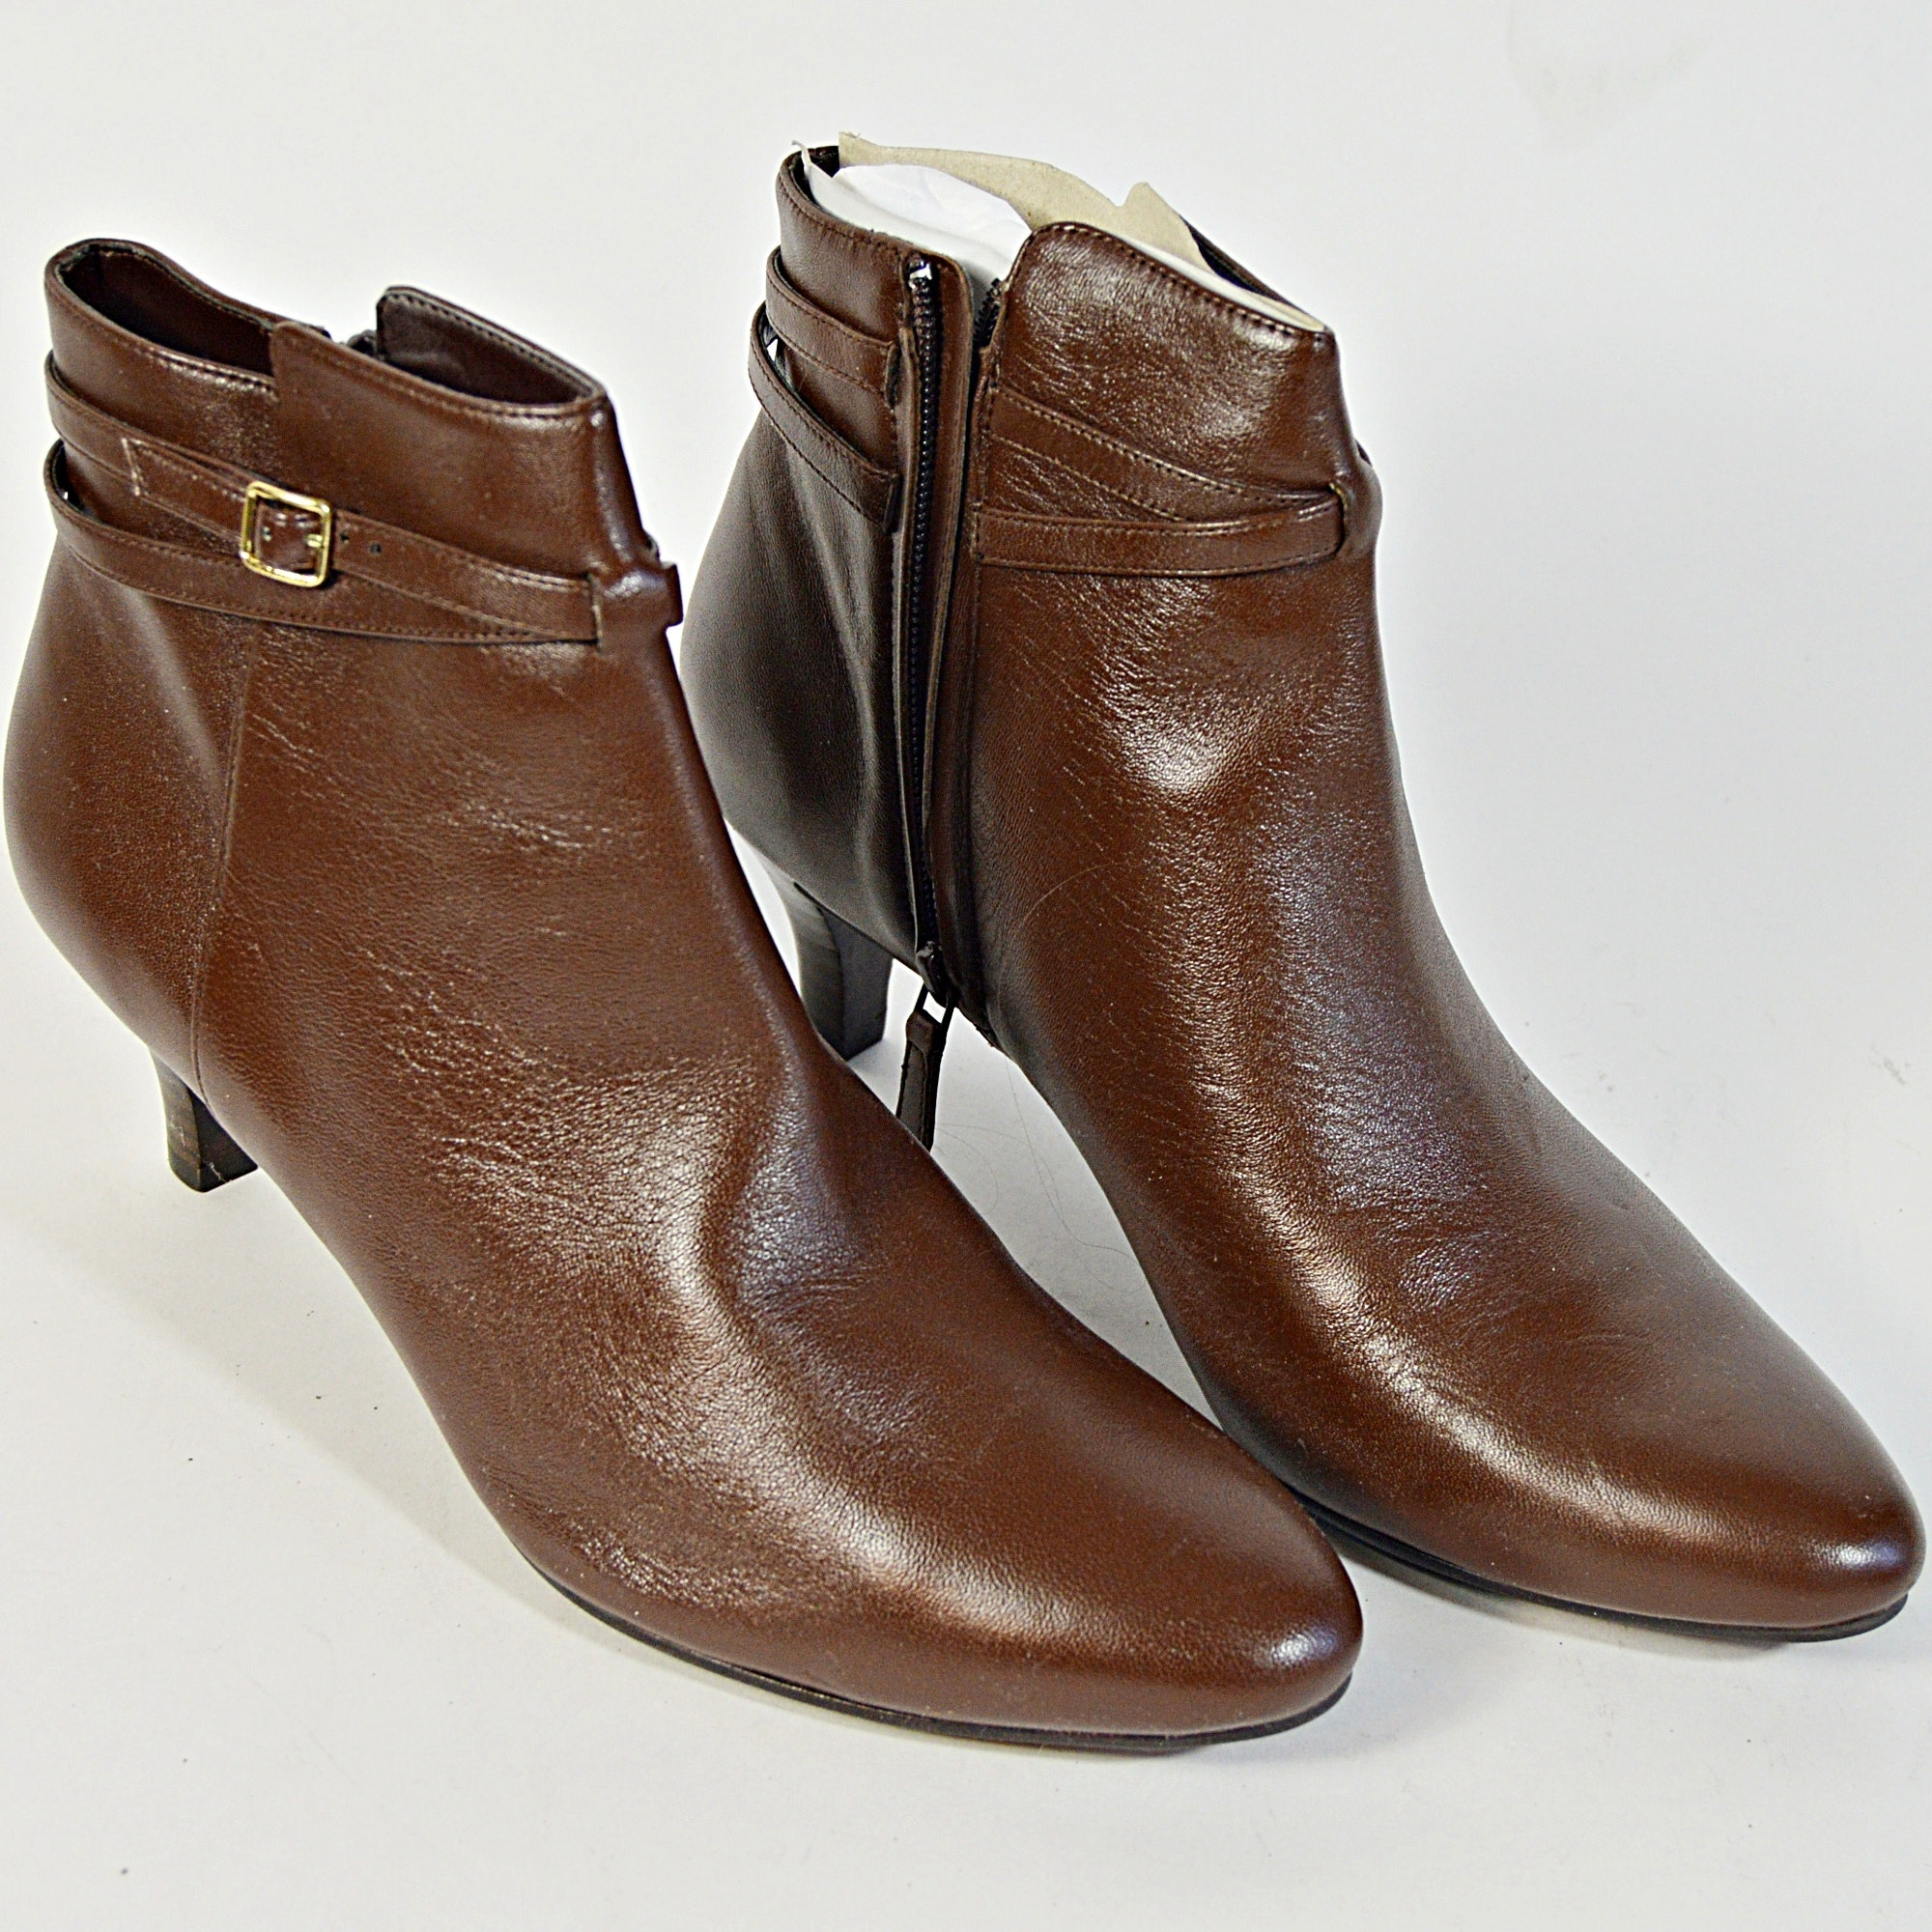 Cole Haan Brown Leather Elinor Short Boots, 9.5B